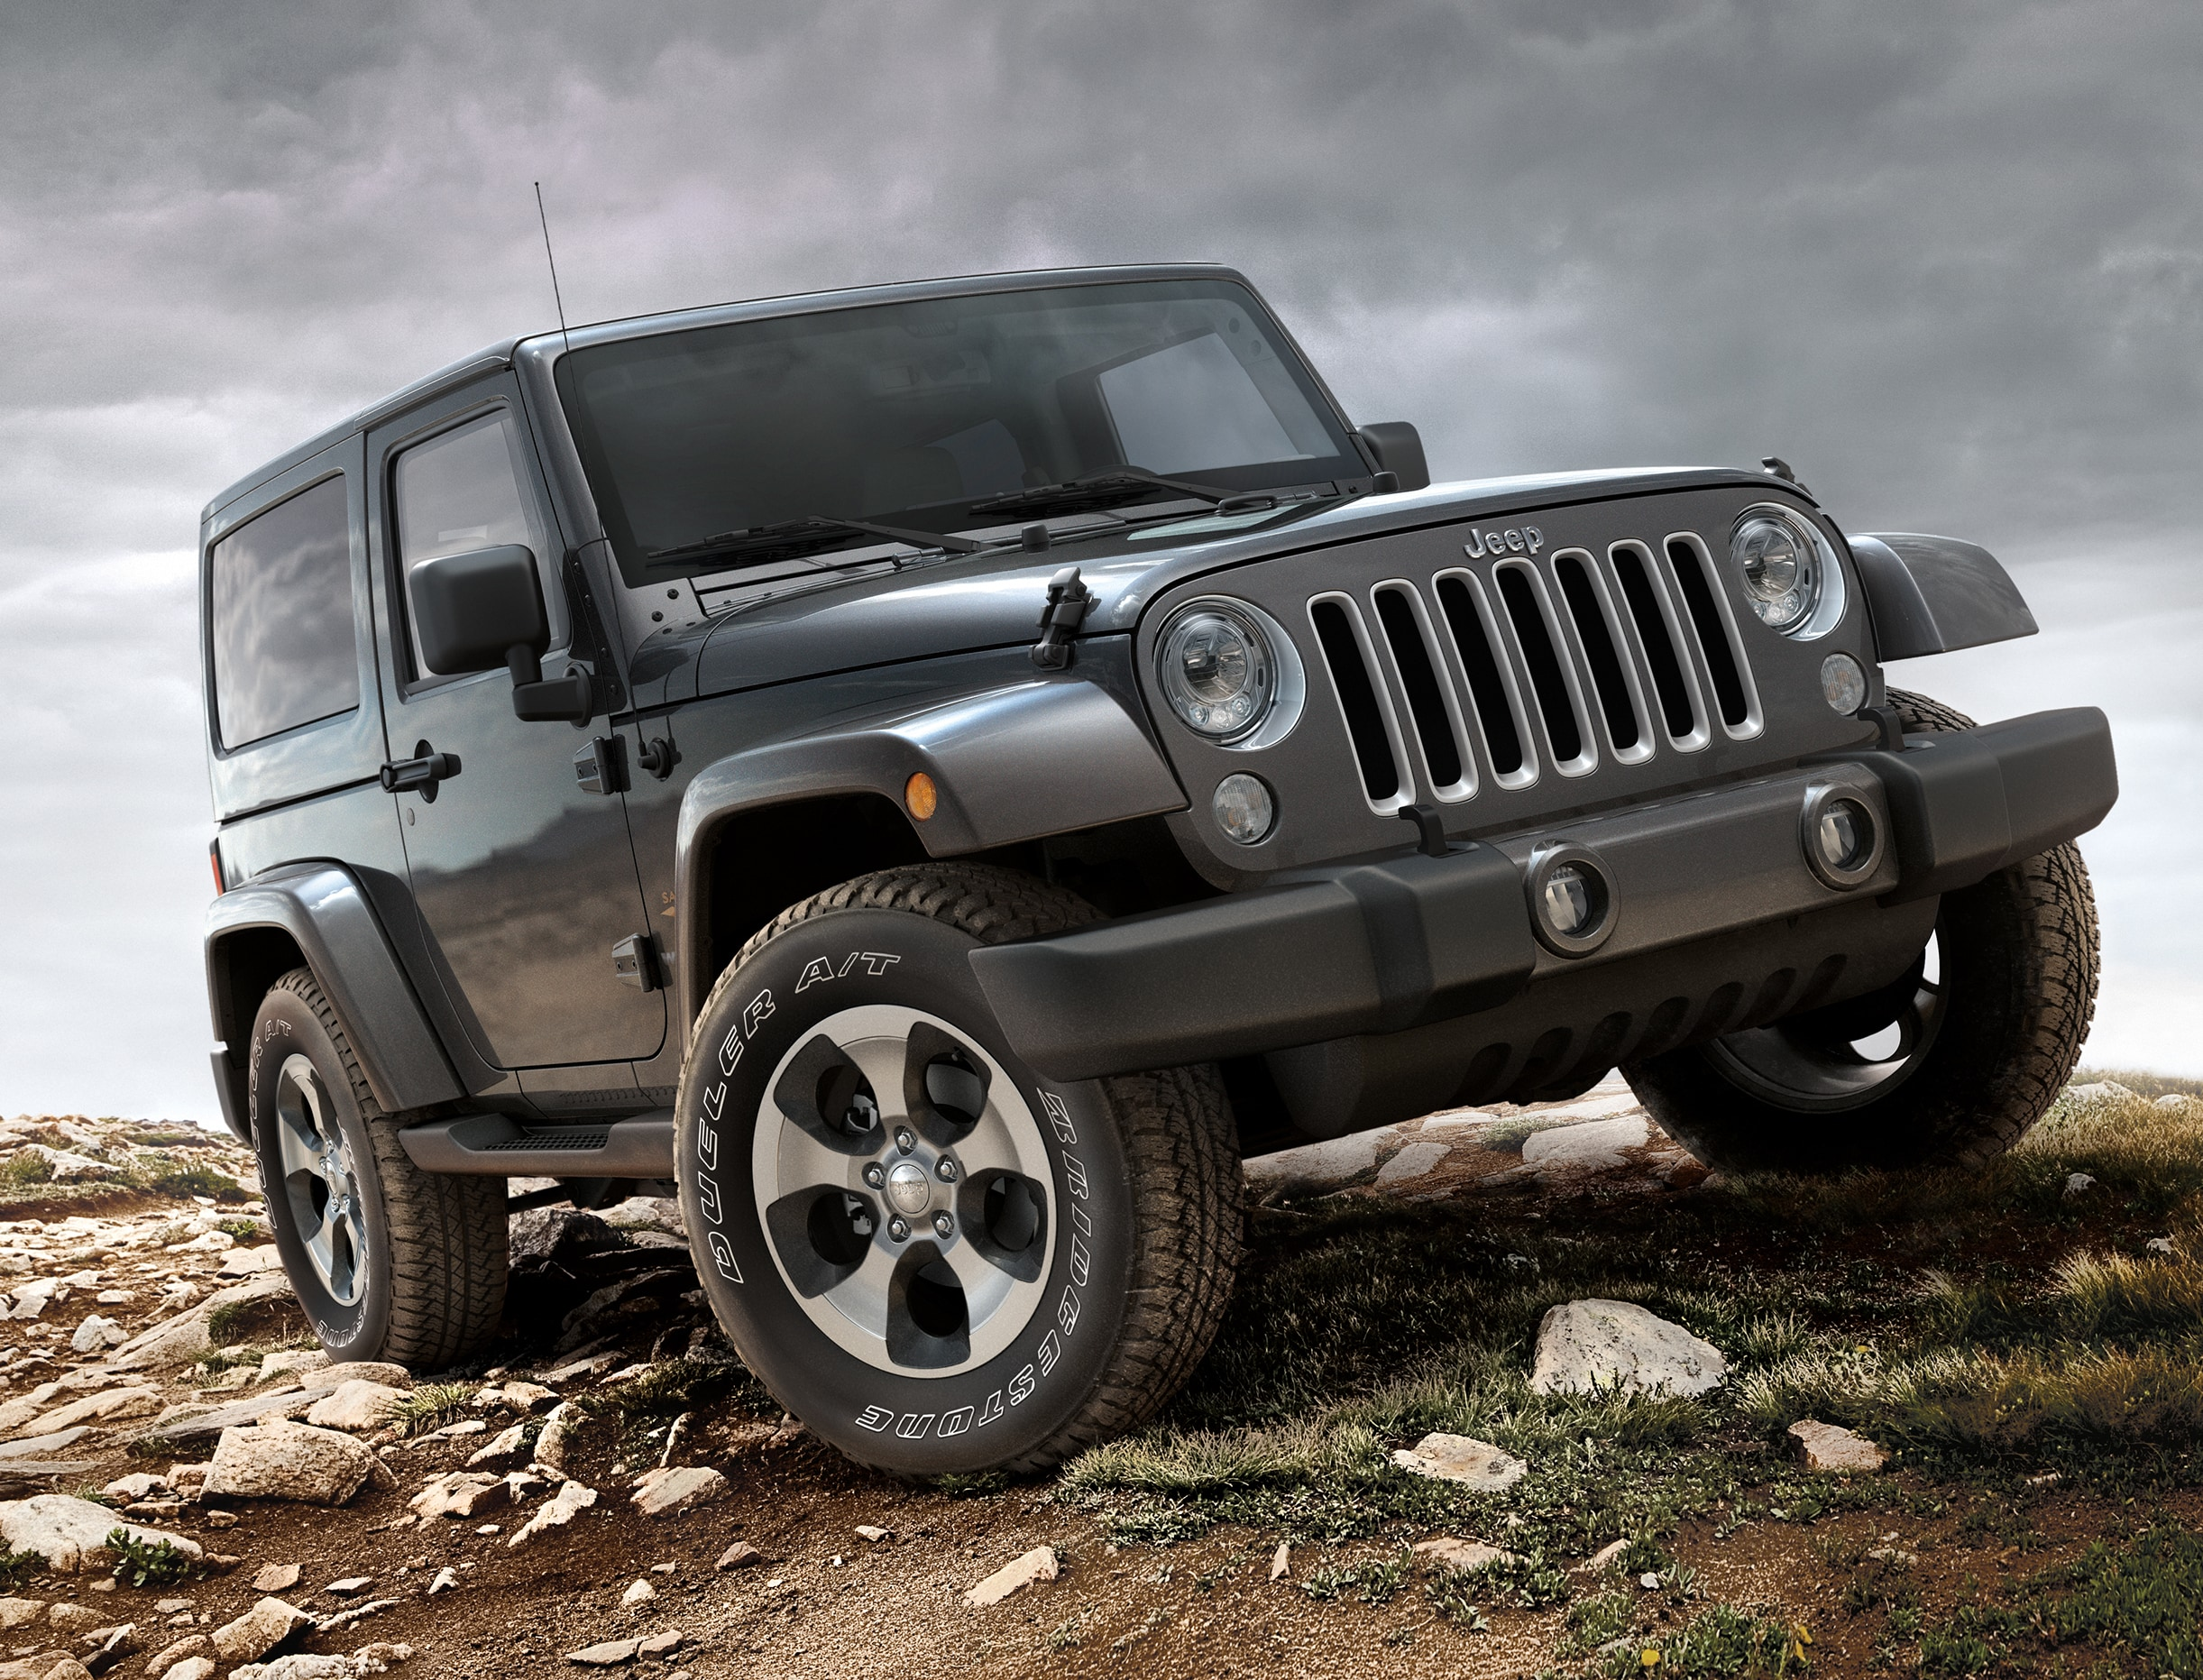 bar jeep tulsa pics tire has view image full click sizes the been this wrangler resized of forum different to